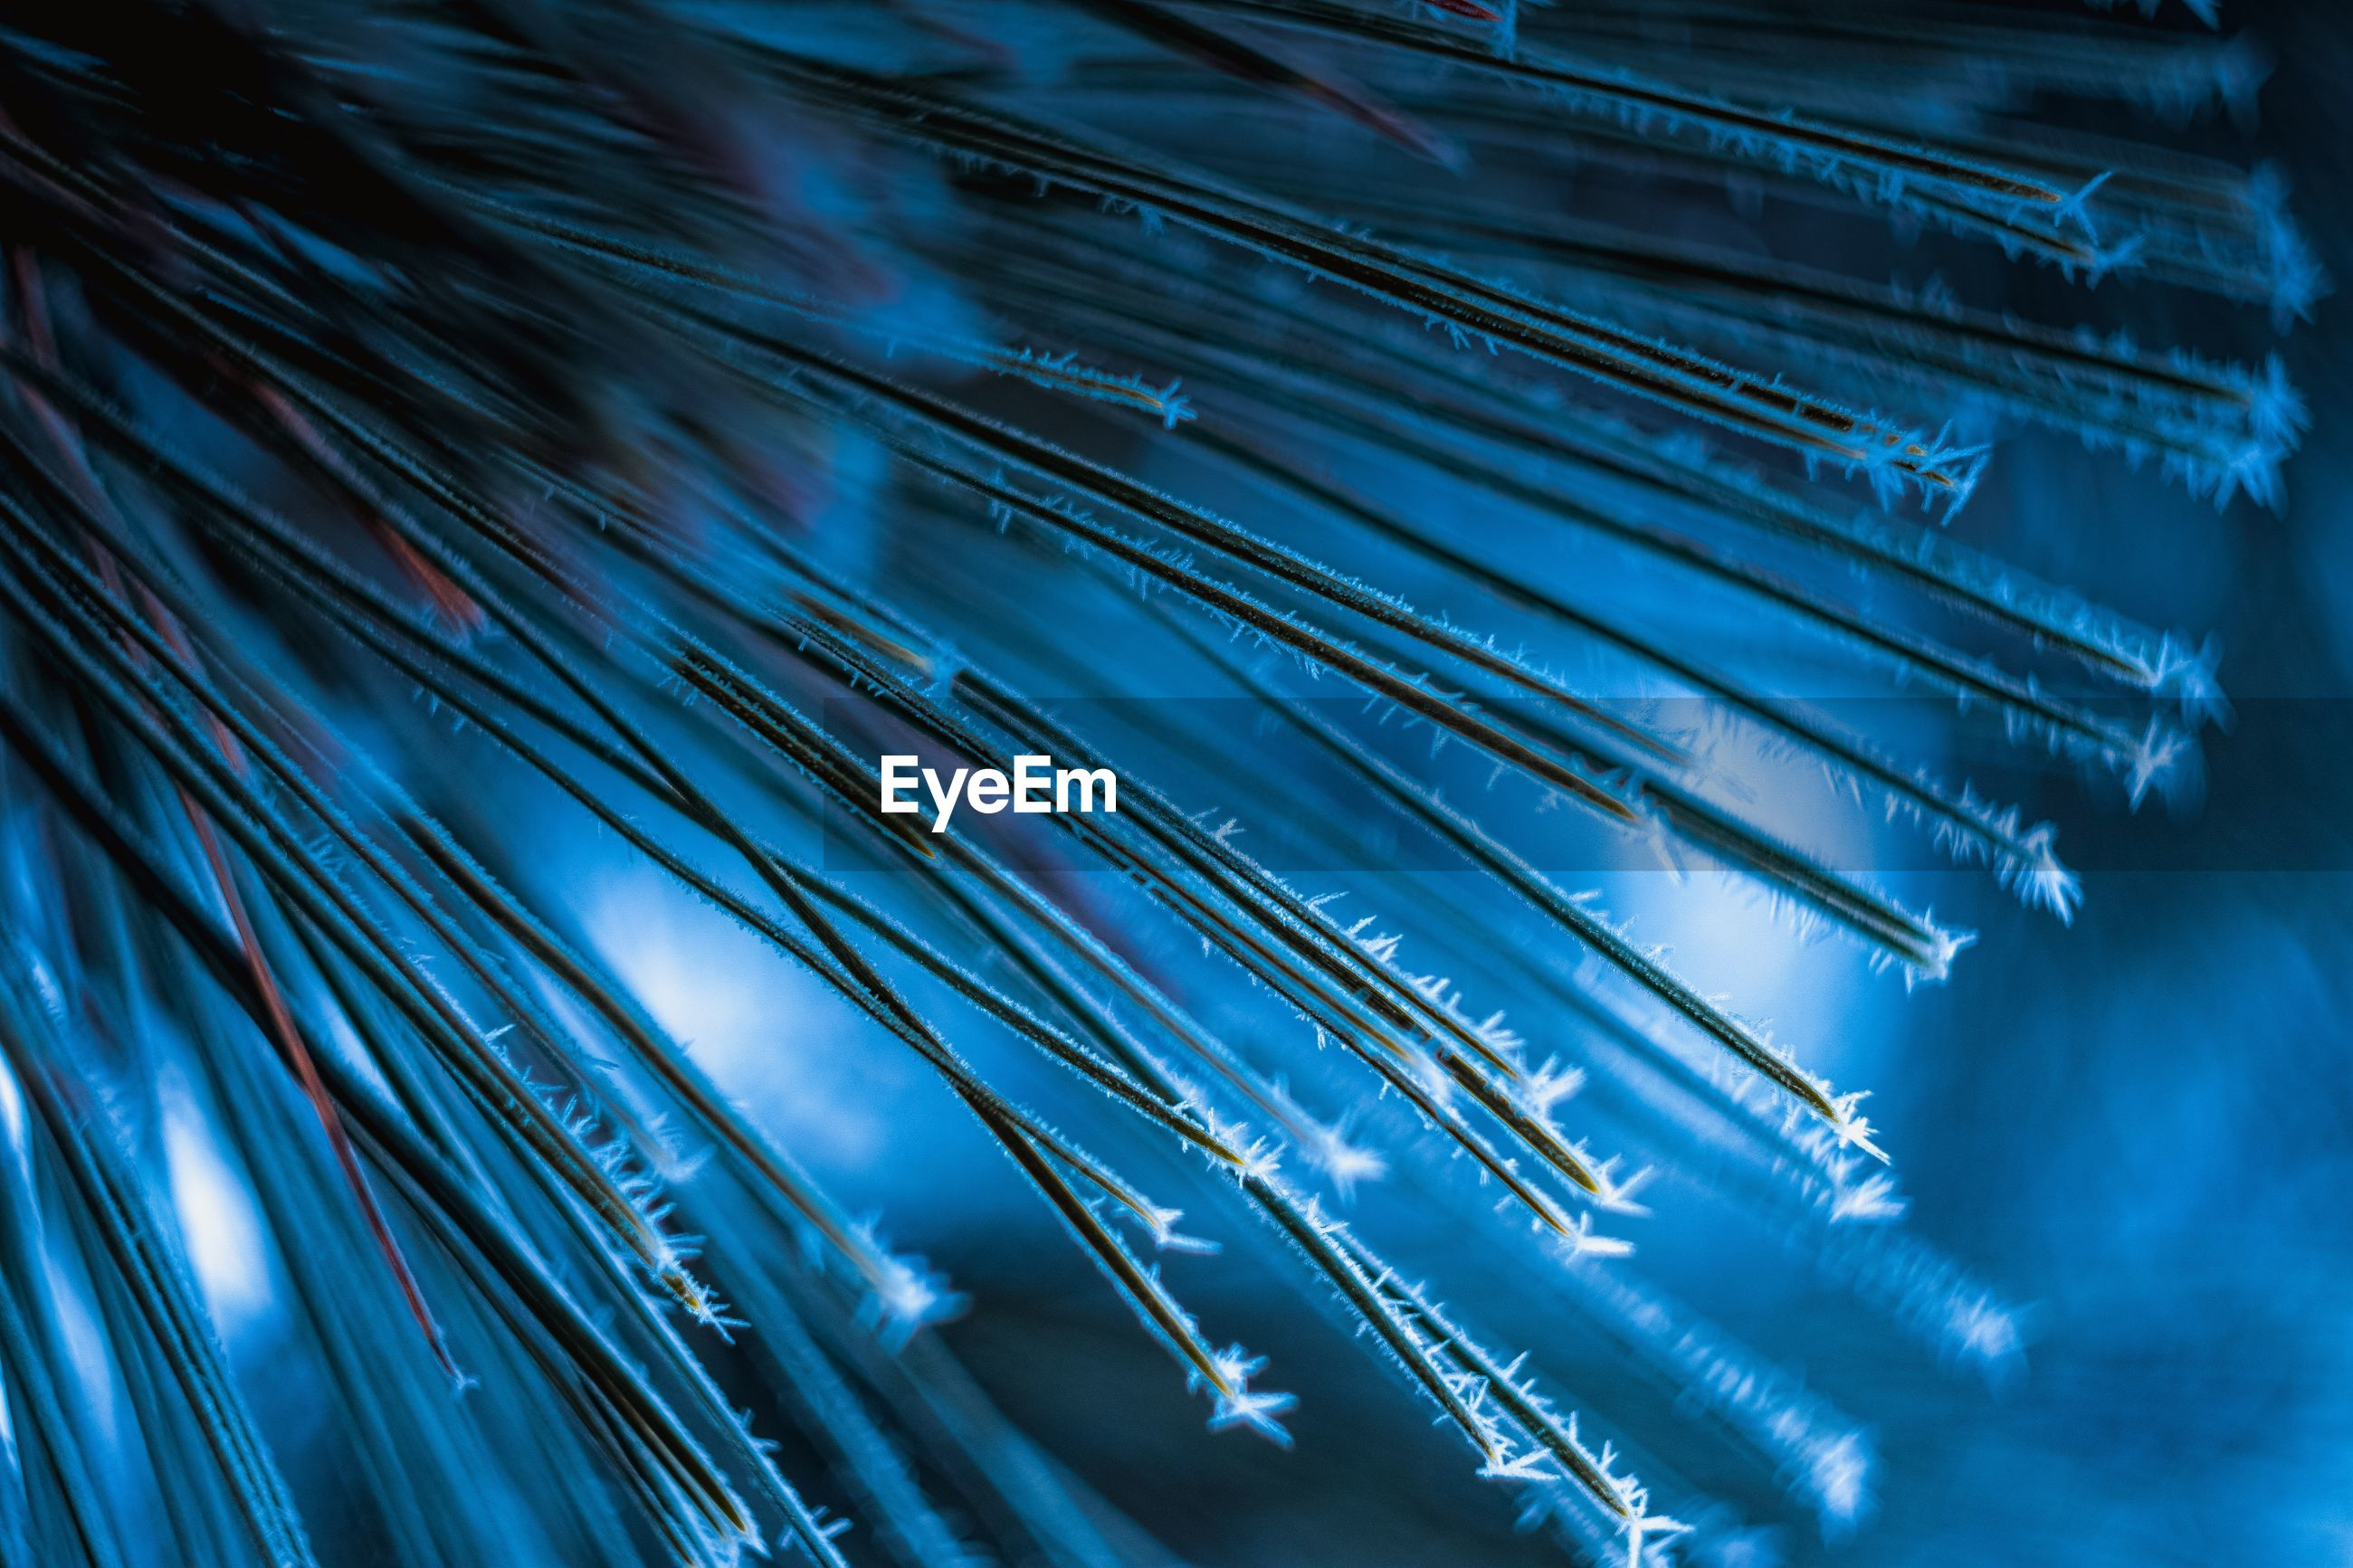 blue, no people, close-up, pattern, full frame, fiber optic, selective focus, metal, light - natural phenomenon, cable, backgrounds, indoors, connection, electricity, technology, abundance, nature, focus on foreground, illuminated, day, power supply